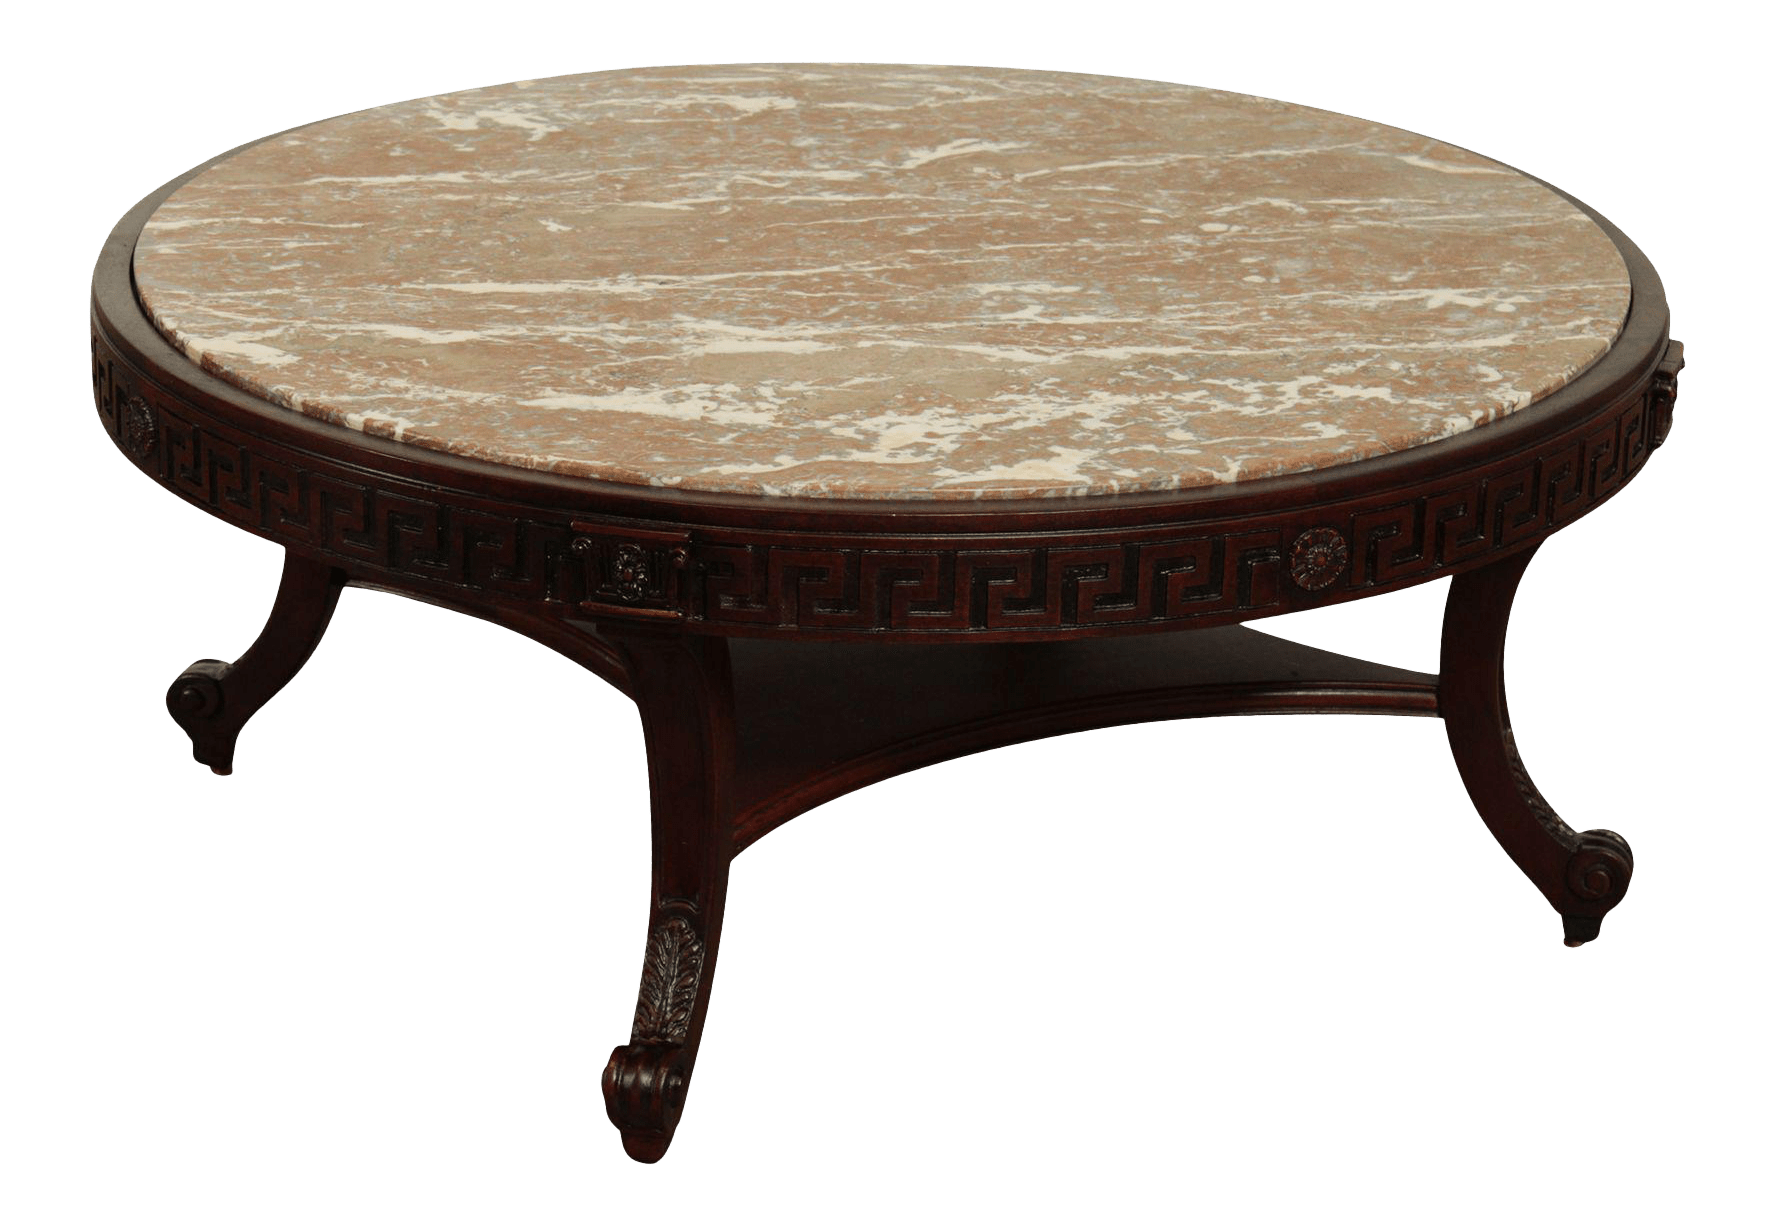 vintage greek revival neo classical style round marble top mahogany coffee table